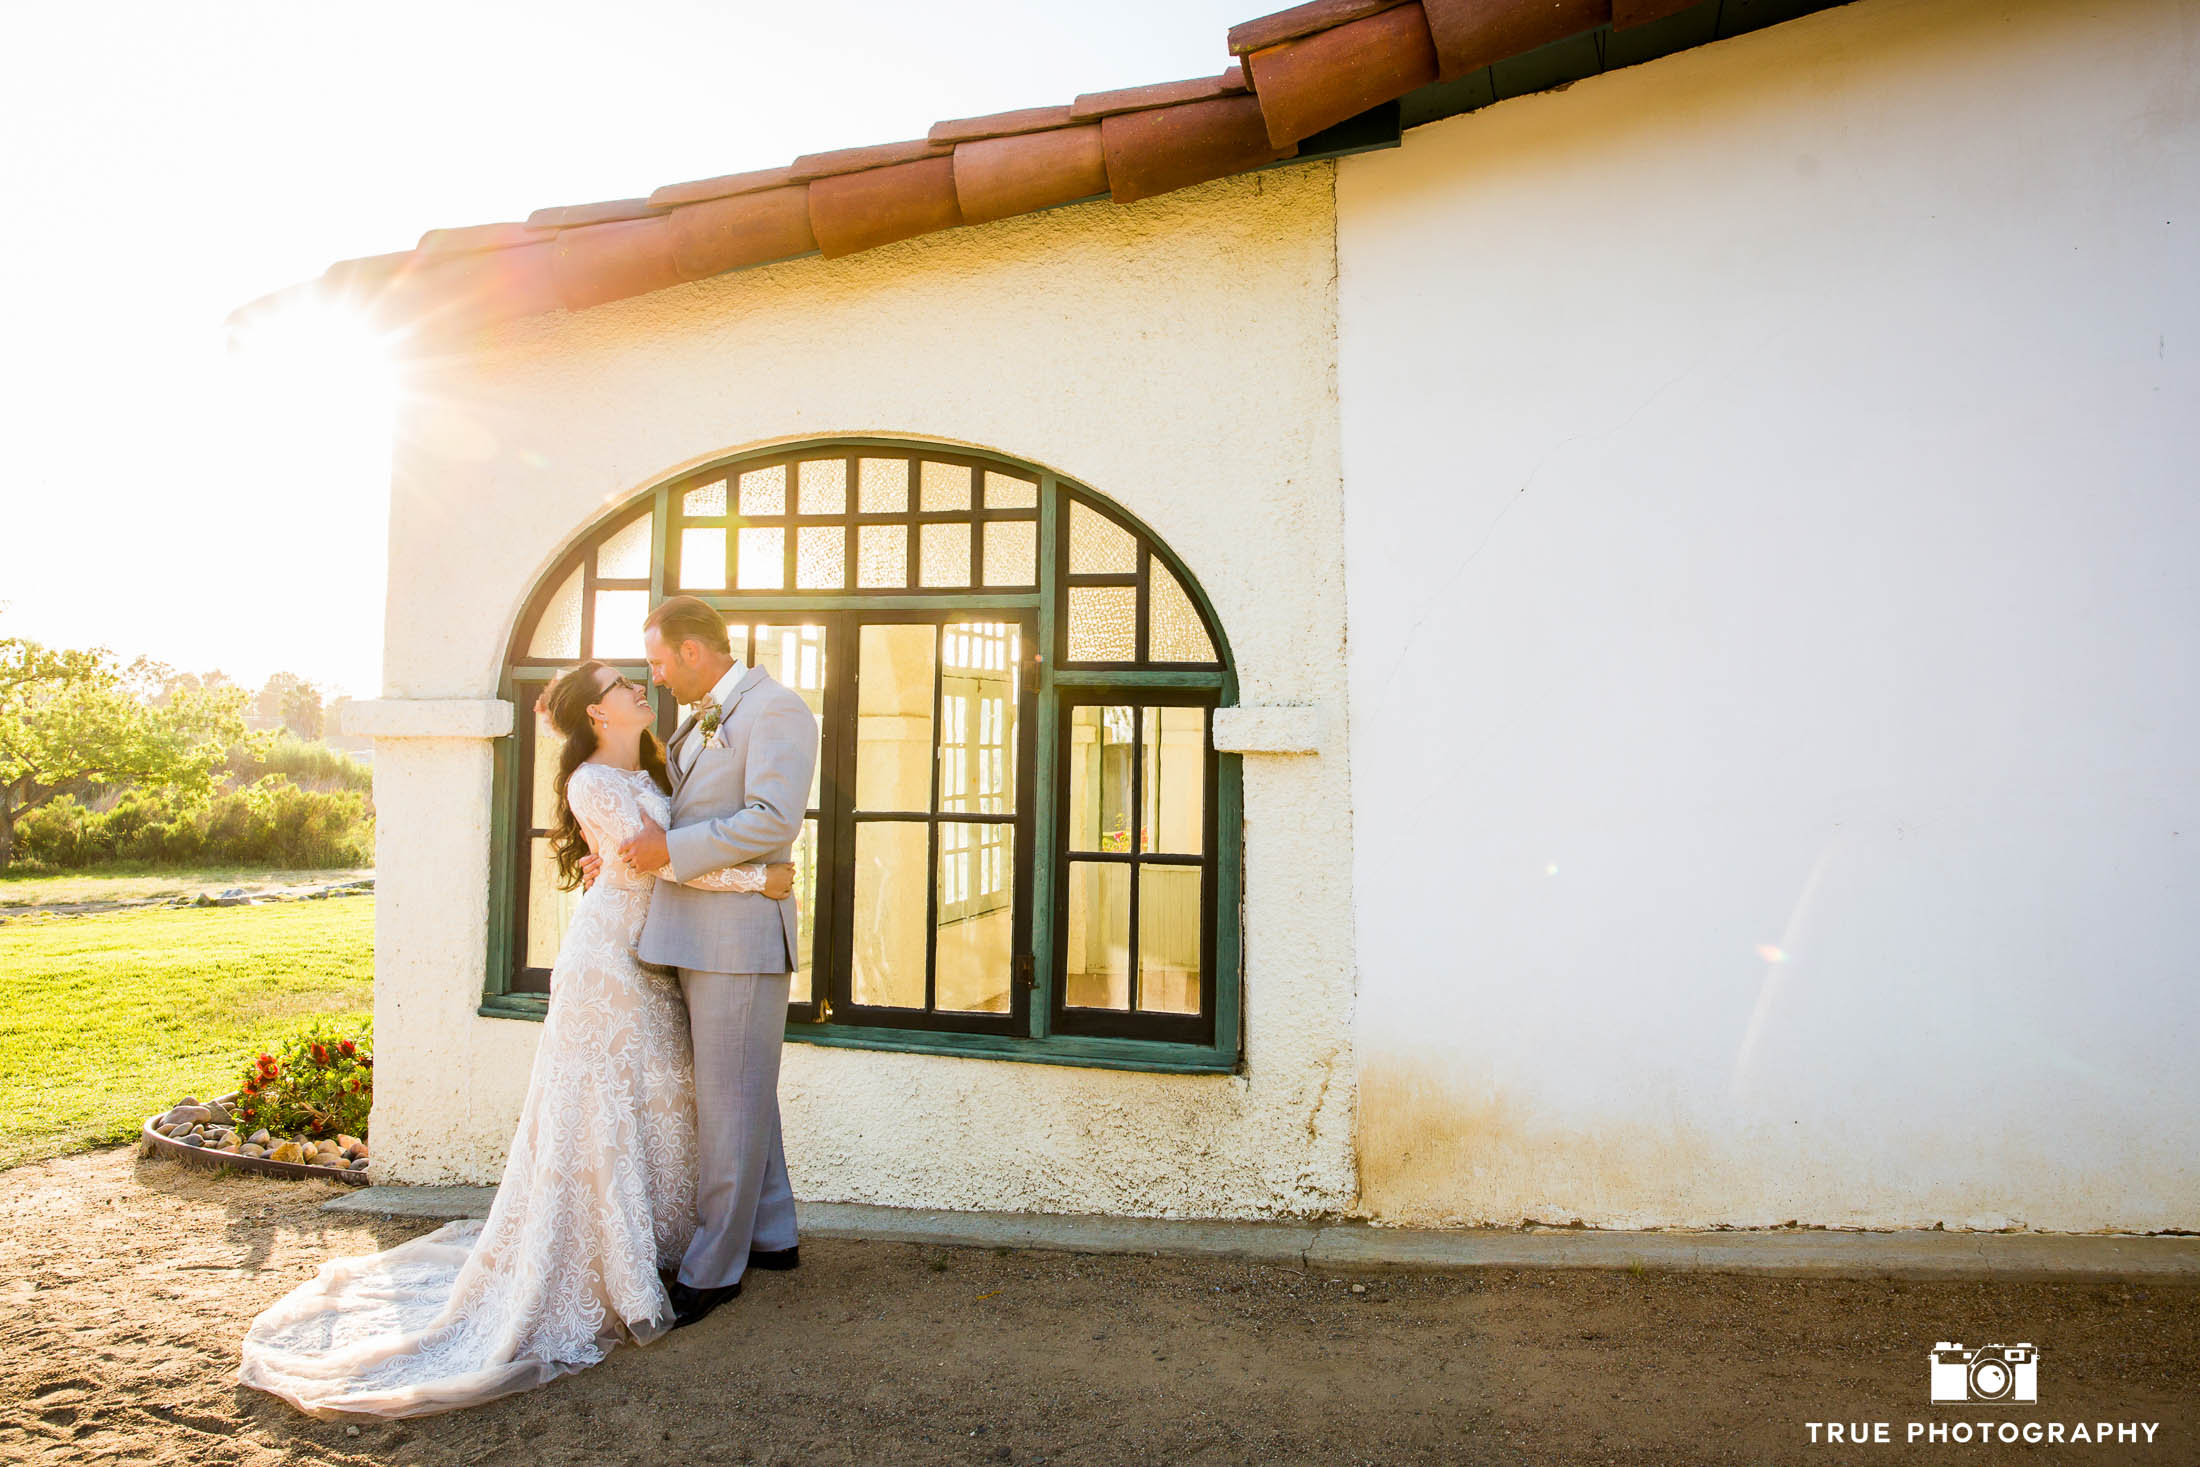 Romantic Wedding Couple Portraits at Spanish-style ranch wedding venue